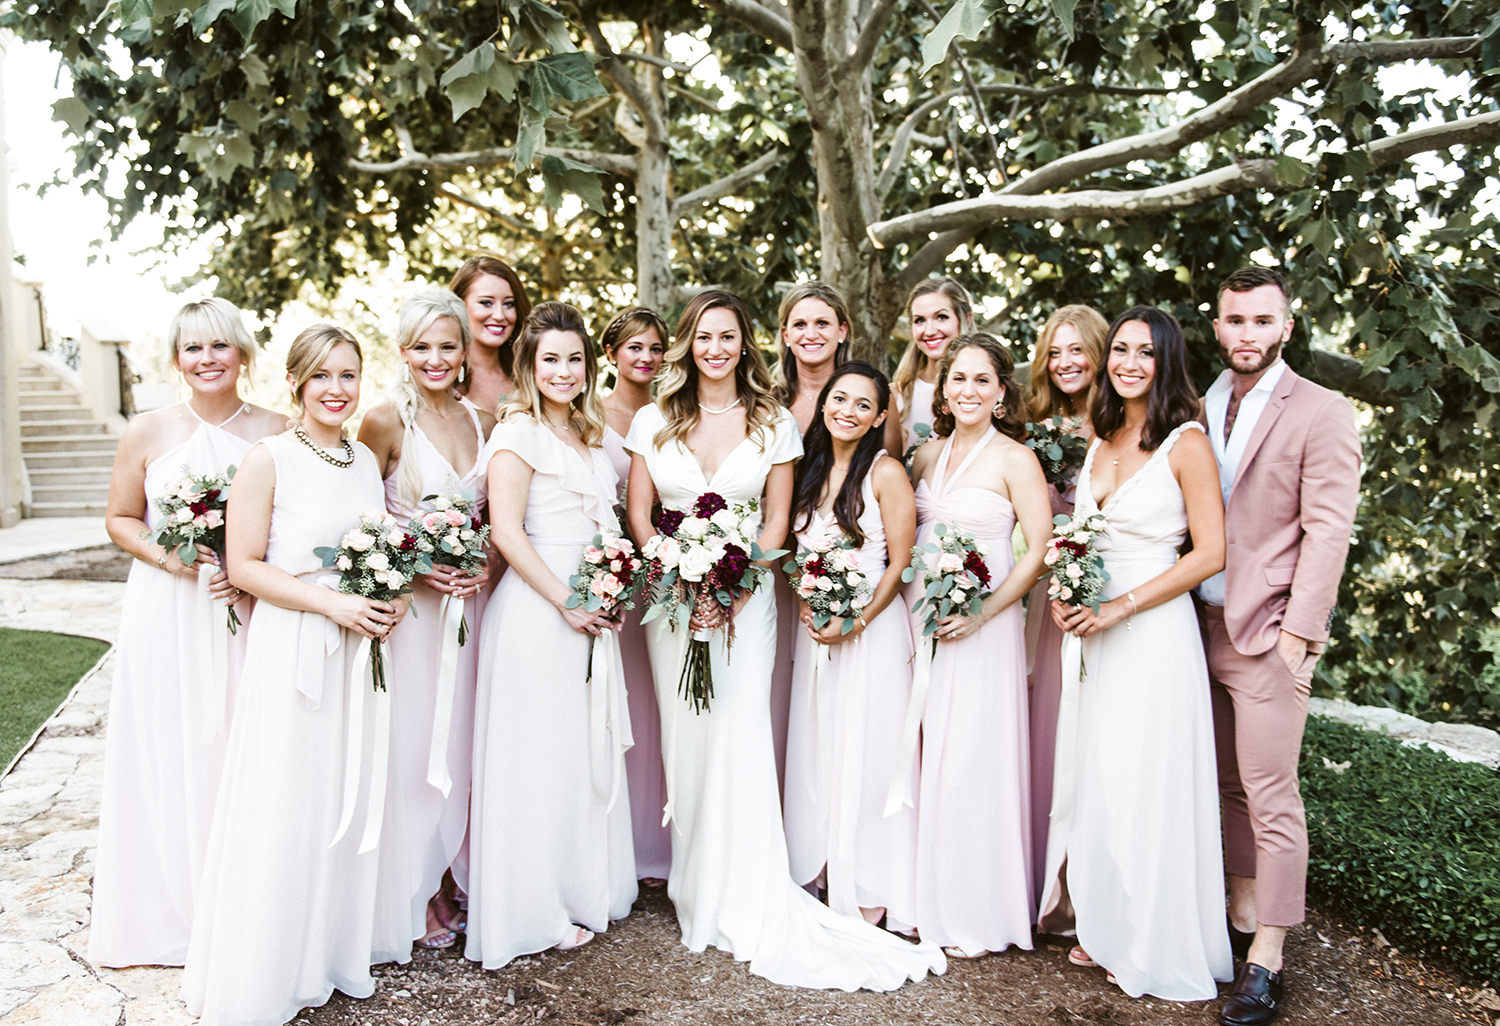 livvyland-blog-olivia-watson-wedding-villa-del-lago-austin-texas-fall-blush-burgundy-classic-romantic-joanna-august-bridesmaid-dresses-2